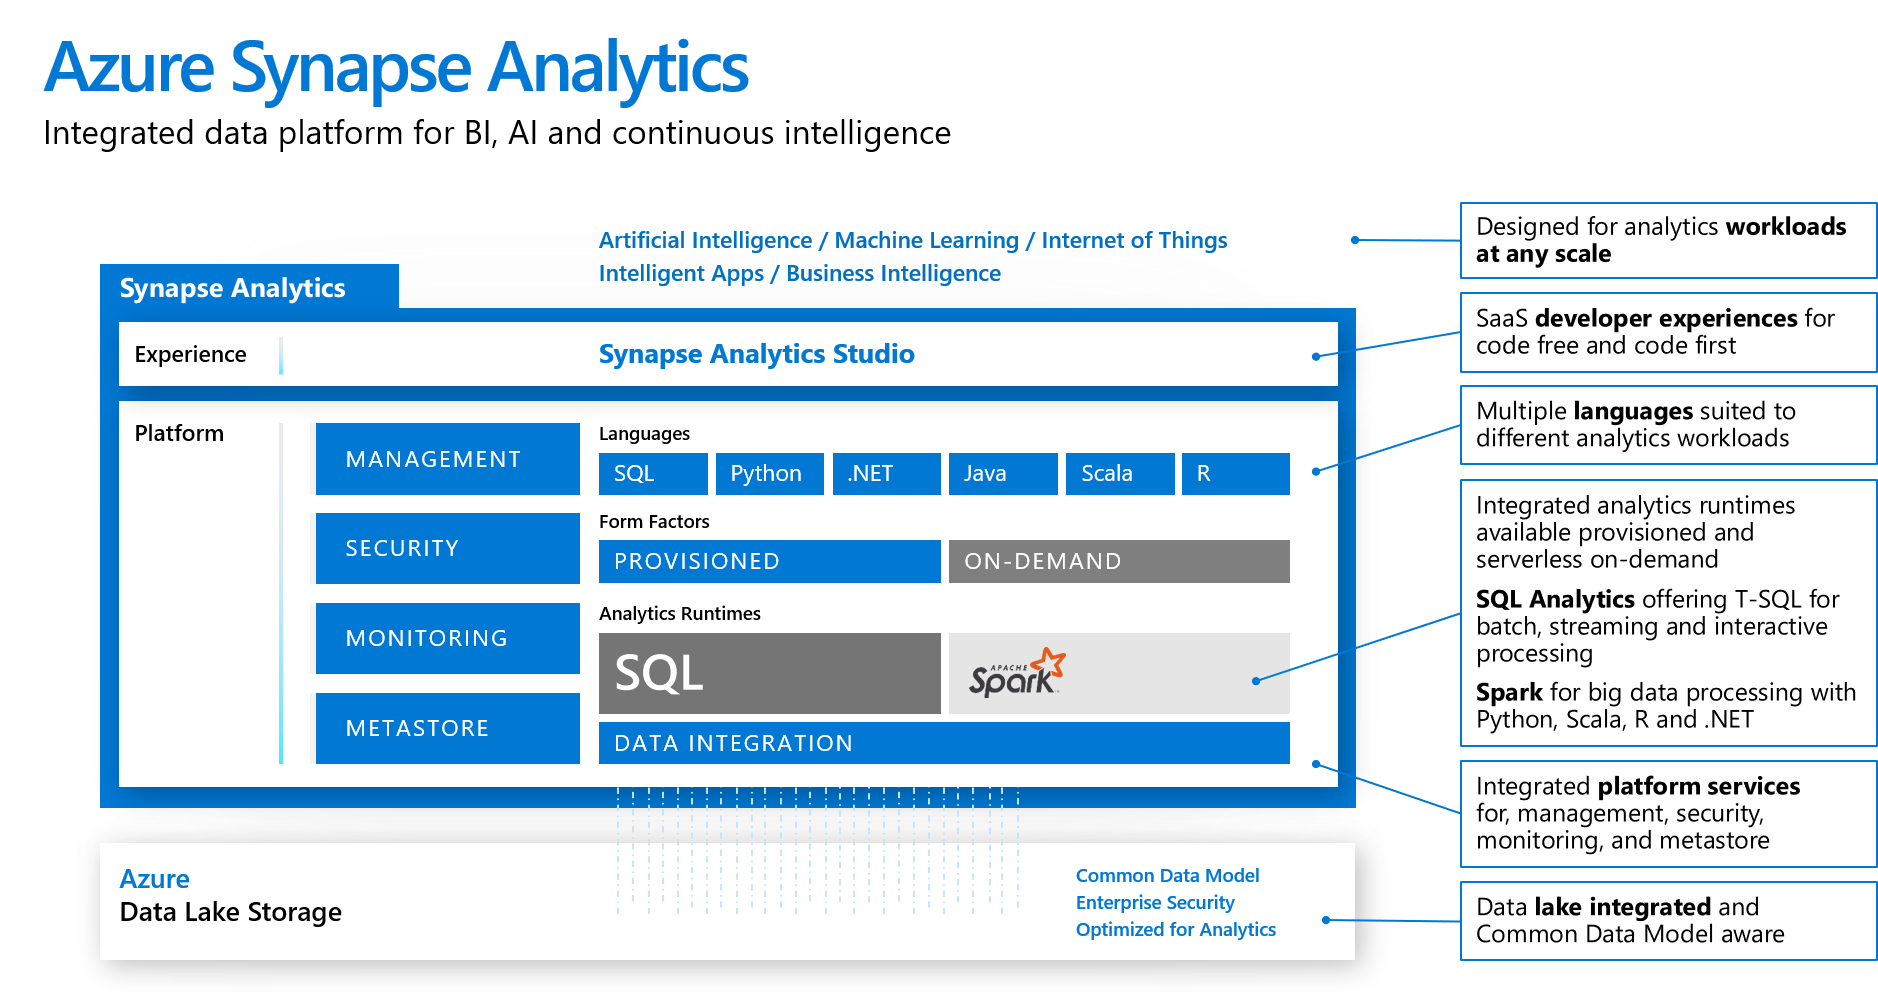 Azure Synapse Analytics for integrated data platform experience, BI, AI, and continuous intelligence as part of your data strategy